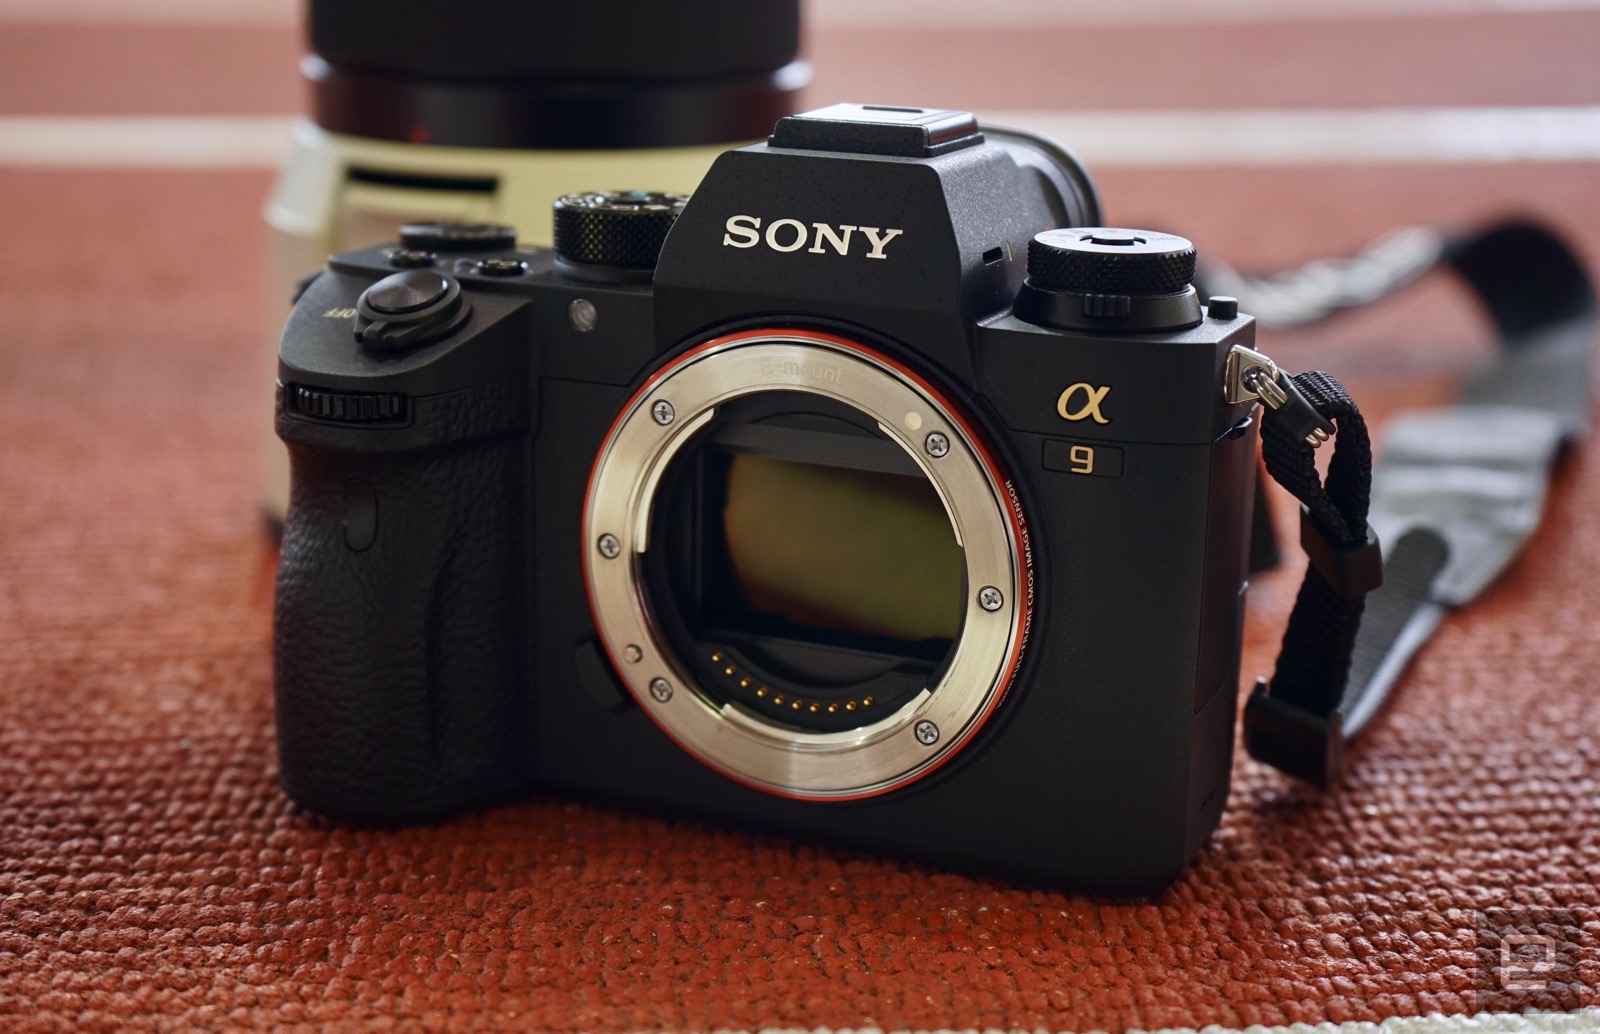 24 hours with Sony\'s A9 full-frame mirrorless camera - Tips general news